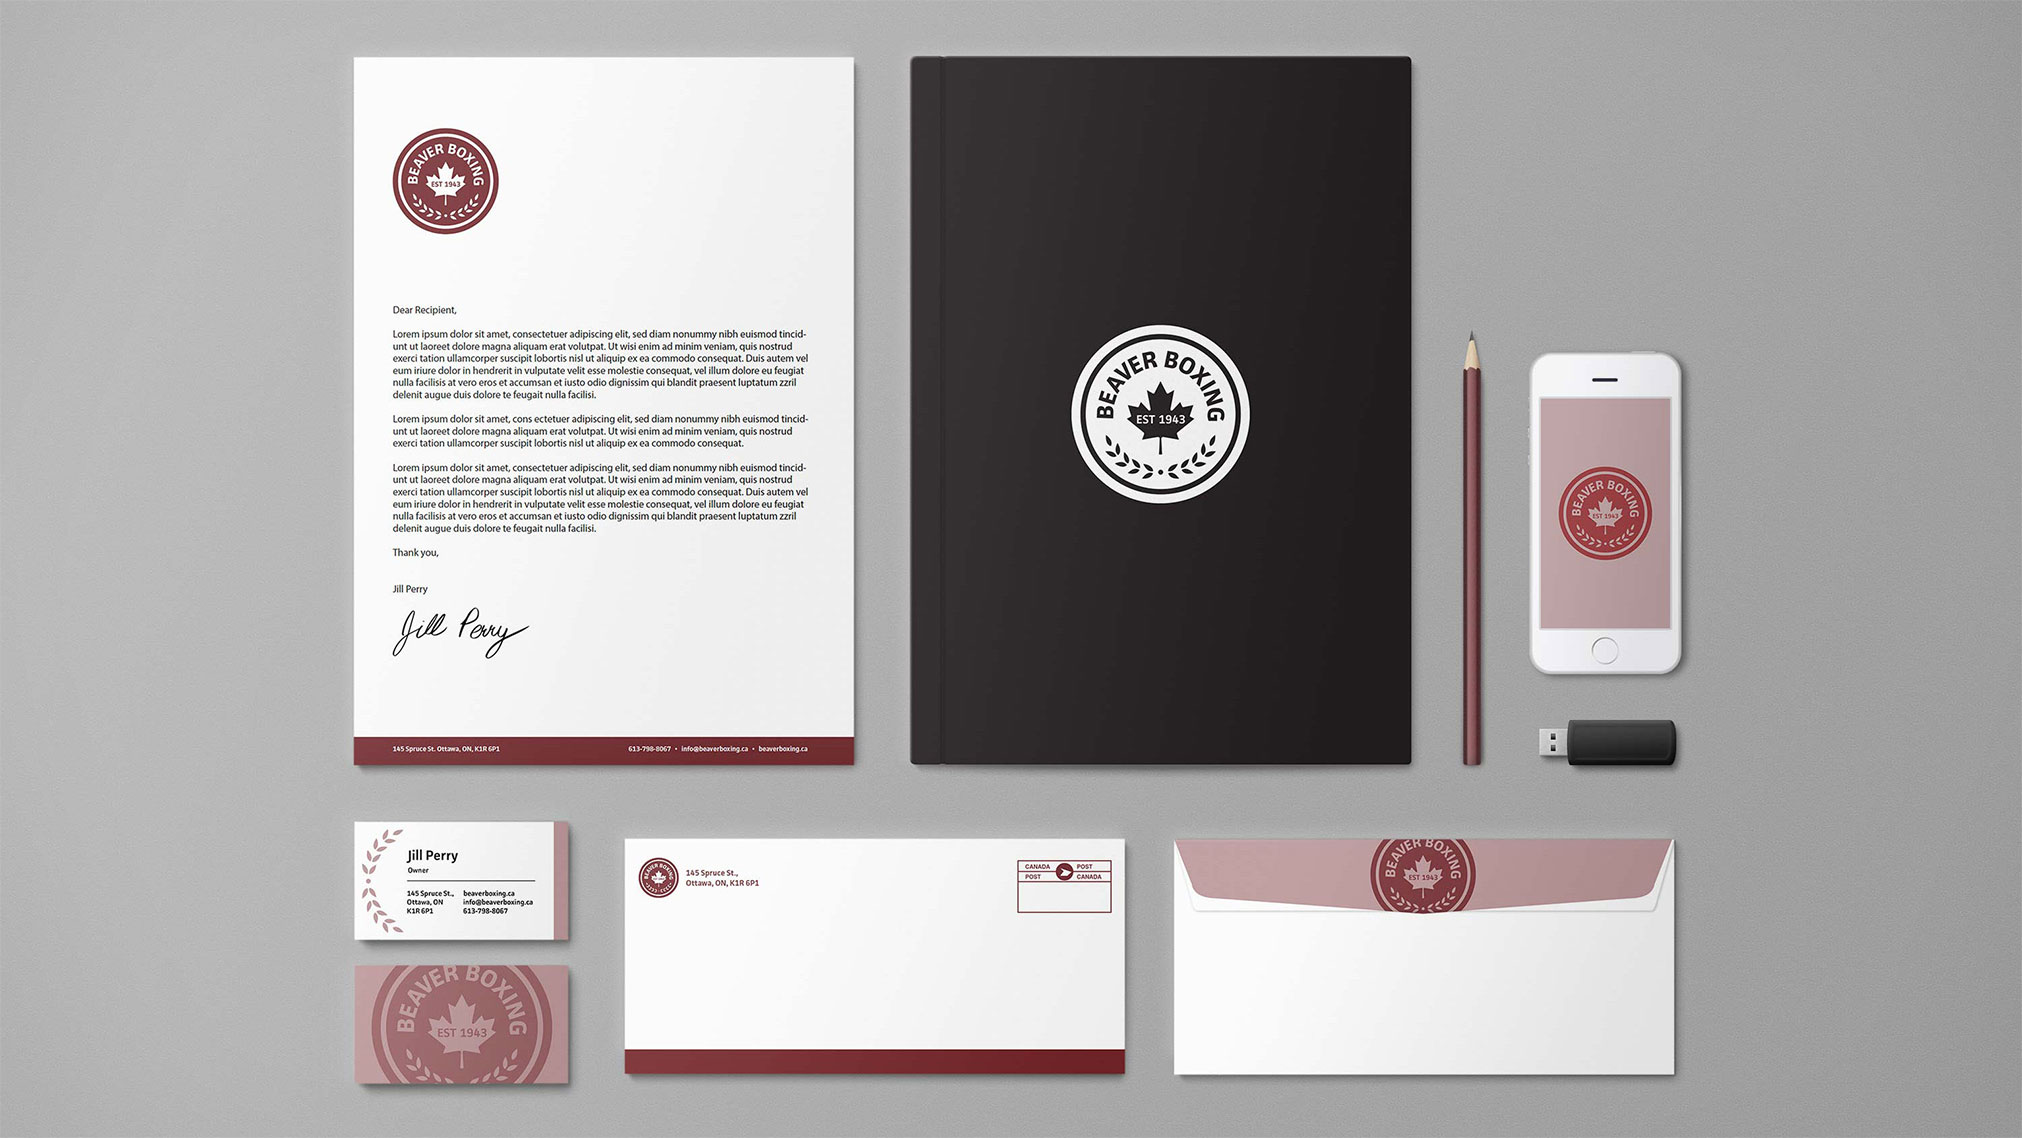 This was a logo redesign for a small business in Ottawa. It is a boxing club that features olympic-level coaching for boxing. This case study includes a new logo and stationary branding for the club.